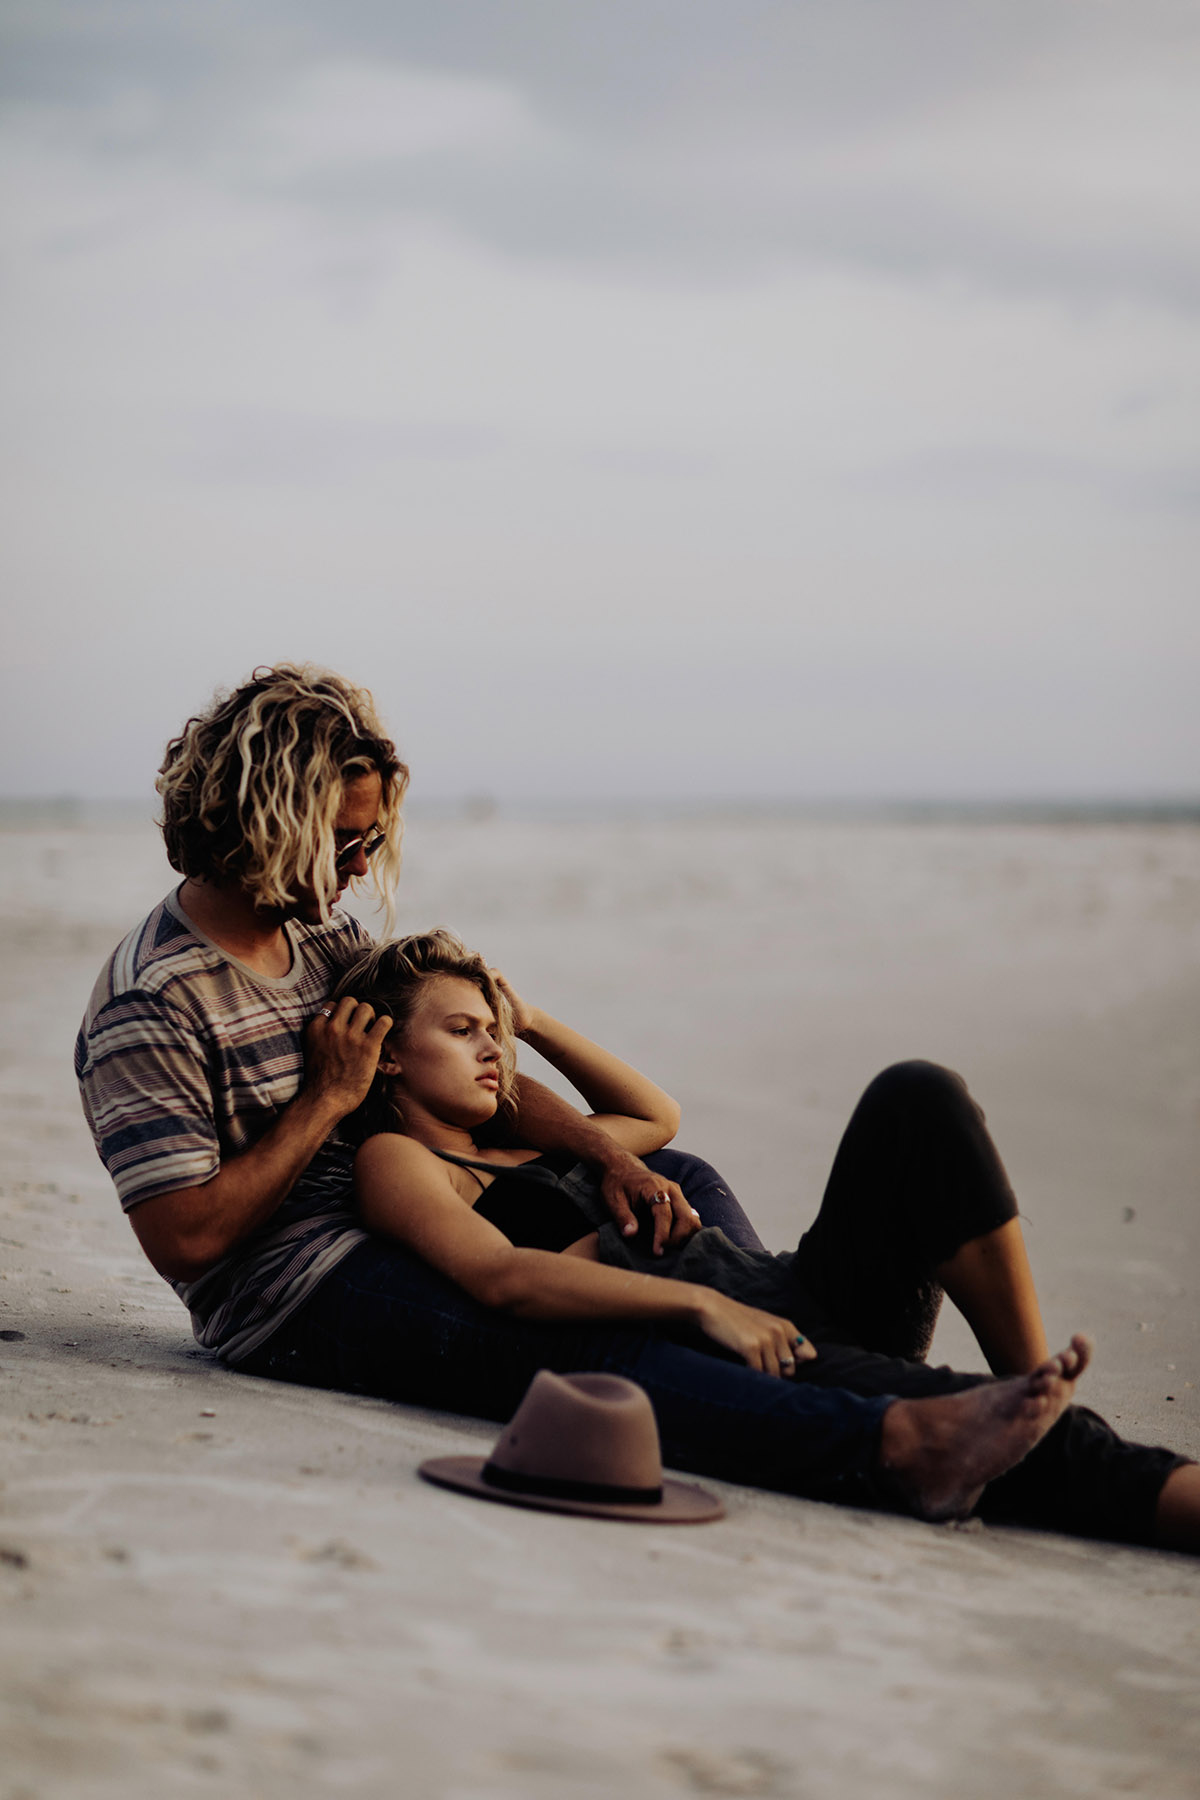 wilmington-beach-north-carolina-photographer-surfer-couple-015.jpg